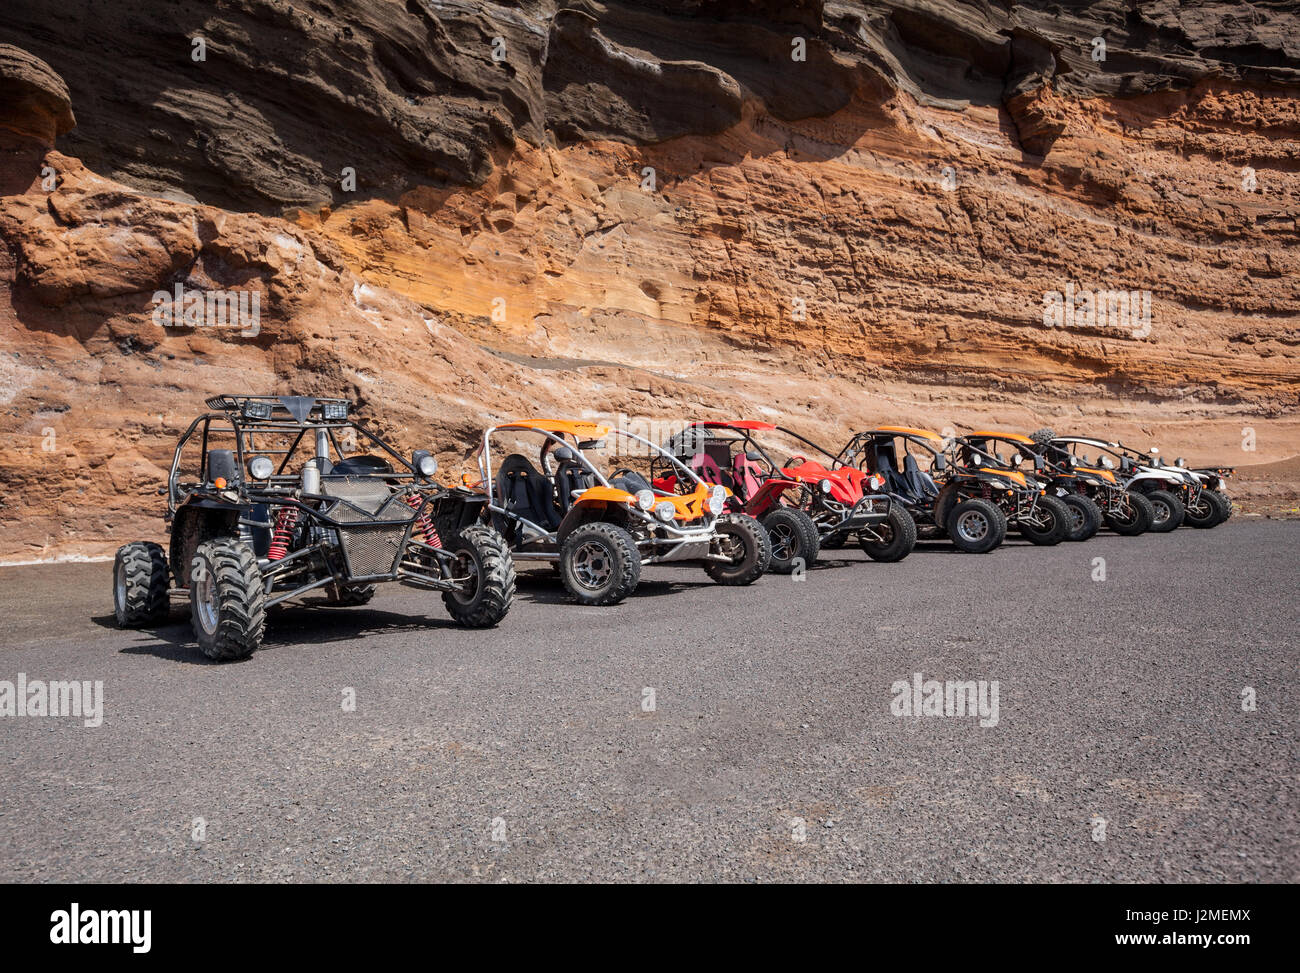 Buggies in front of a wall of rock - Stock Image